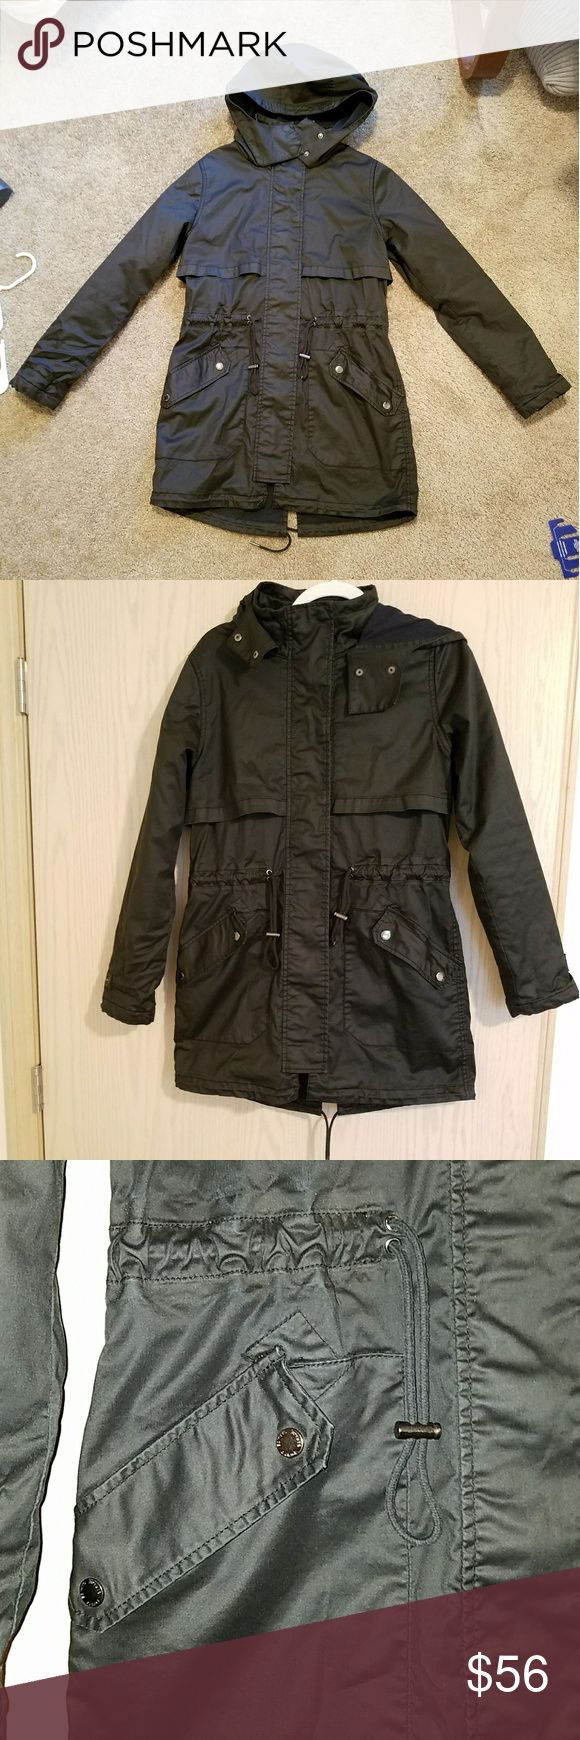 Garage black waterproof trench coat/jacket Had a removable vest insert, no longer available. No tags, size Small. Garage brand. Very warm!! Worn only a couple times. See pictures or message me for more details! Garage Jackets & Coats